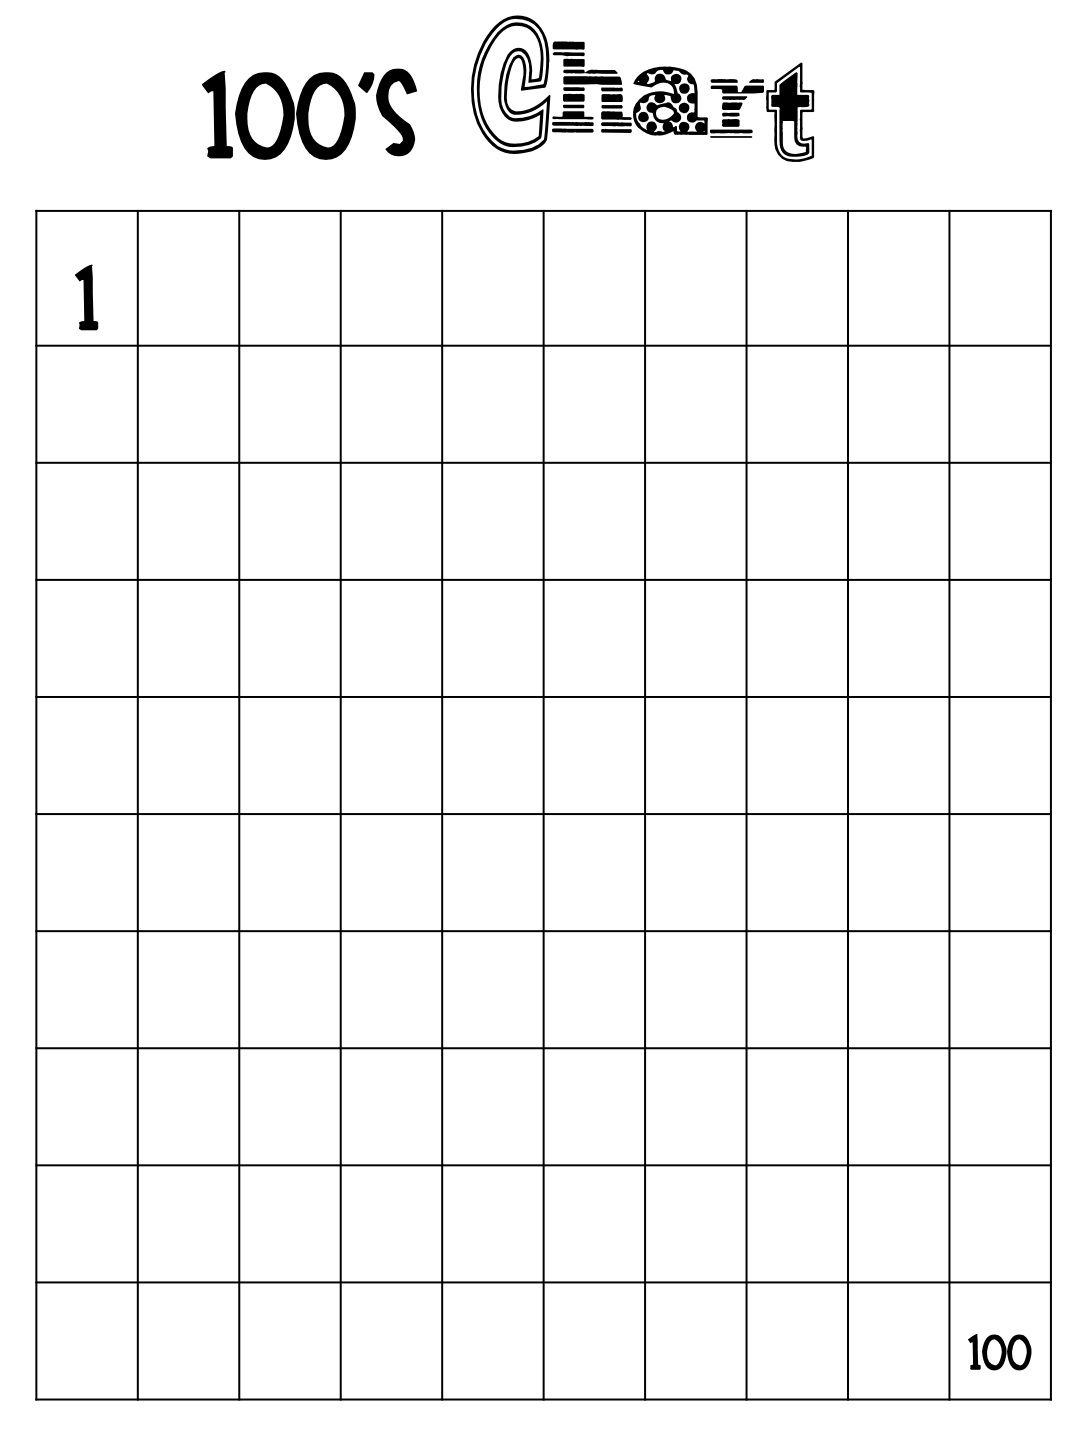 Blank hundreds chart fast finisher folder  haven   quite made these also best coloring images math activities rh pinterest